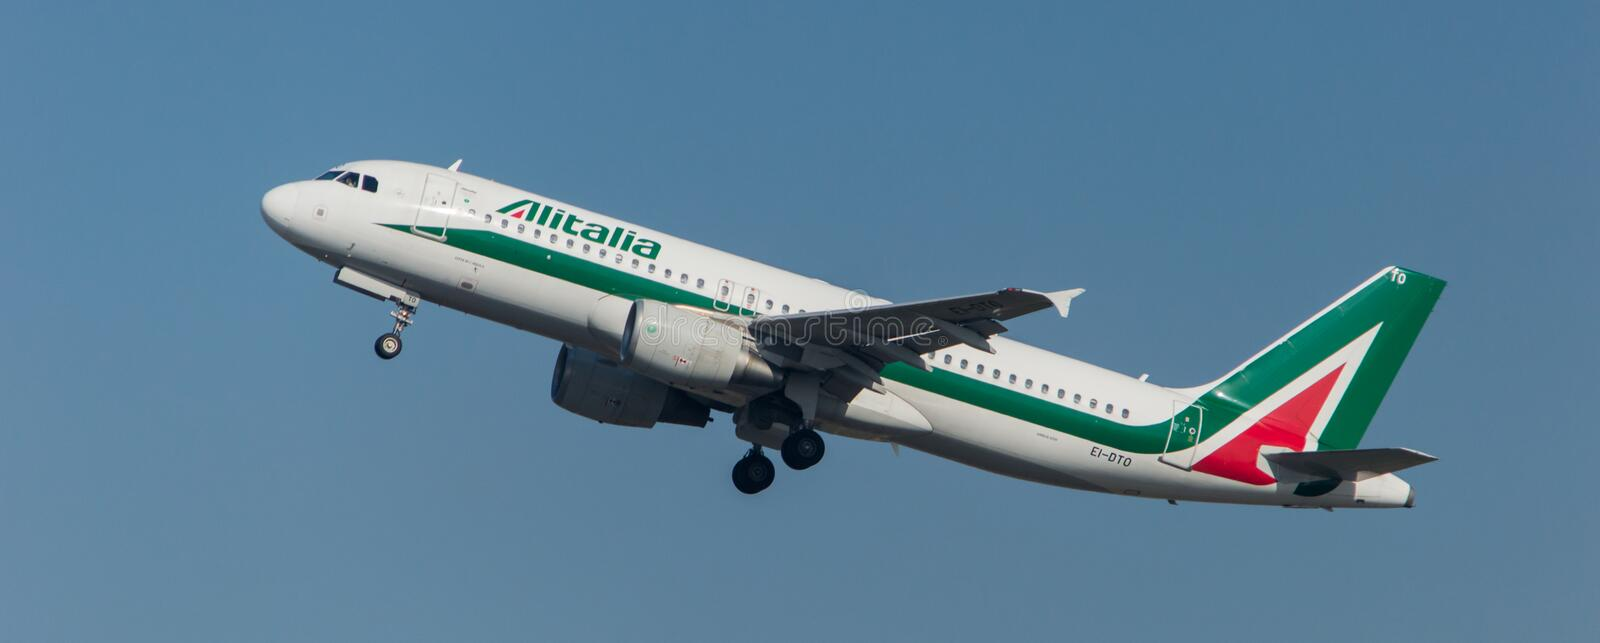 Alitalia Airbus 320 taking off royalty free stock images